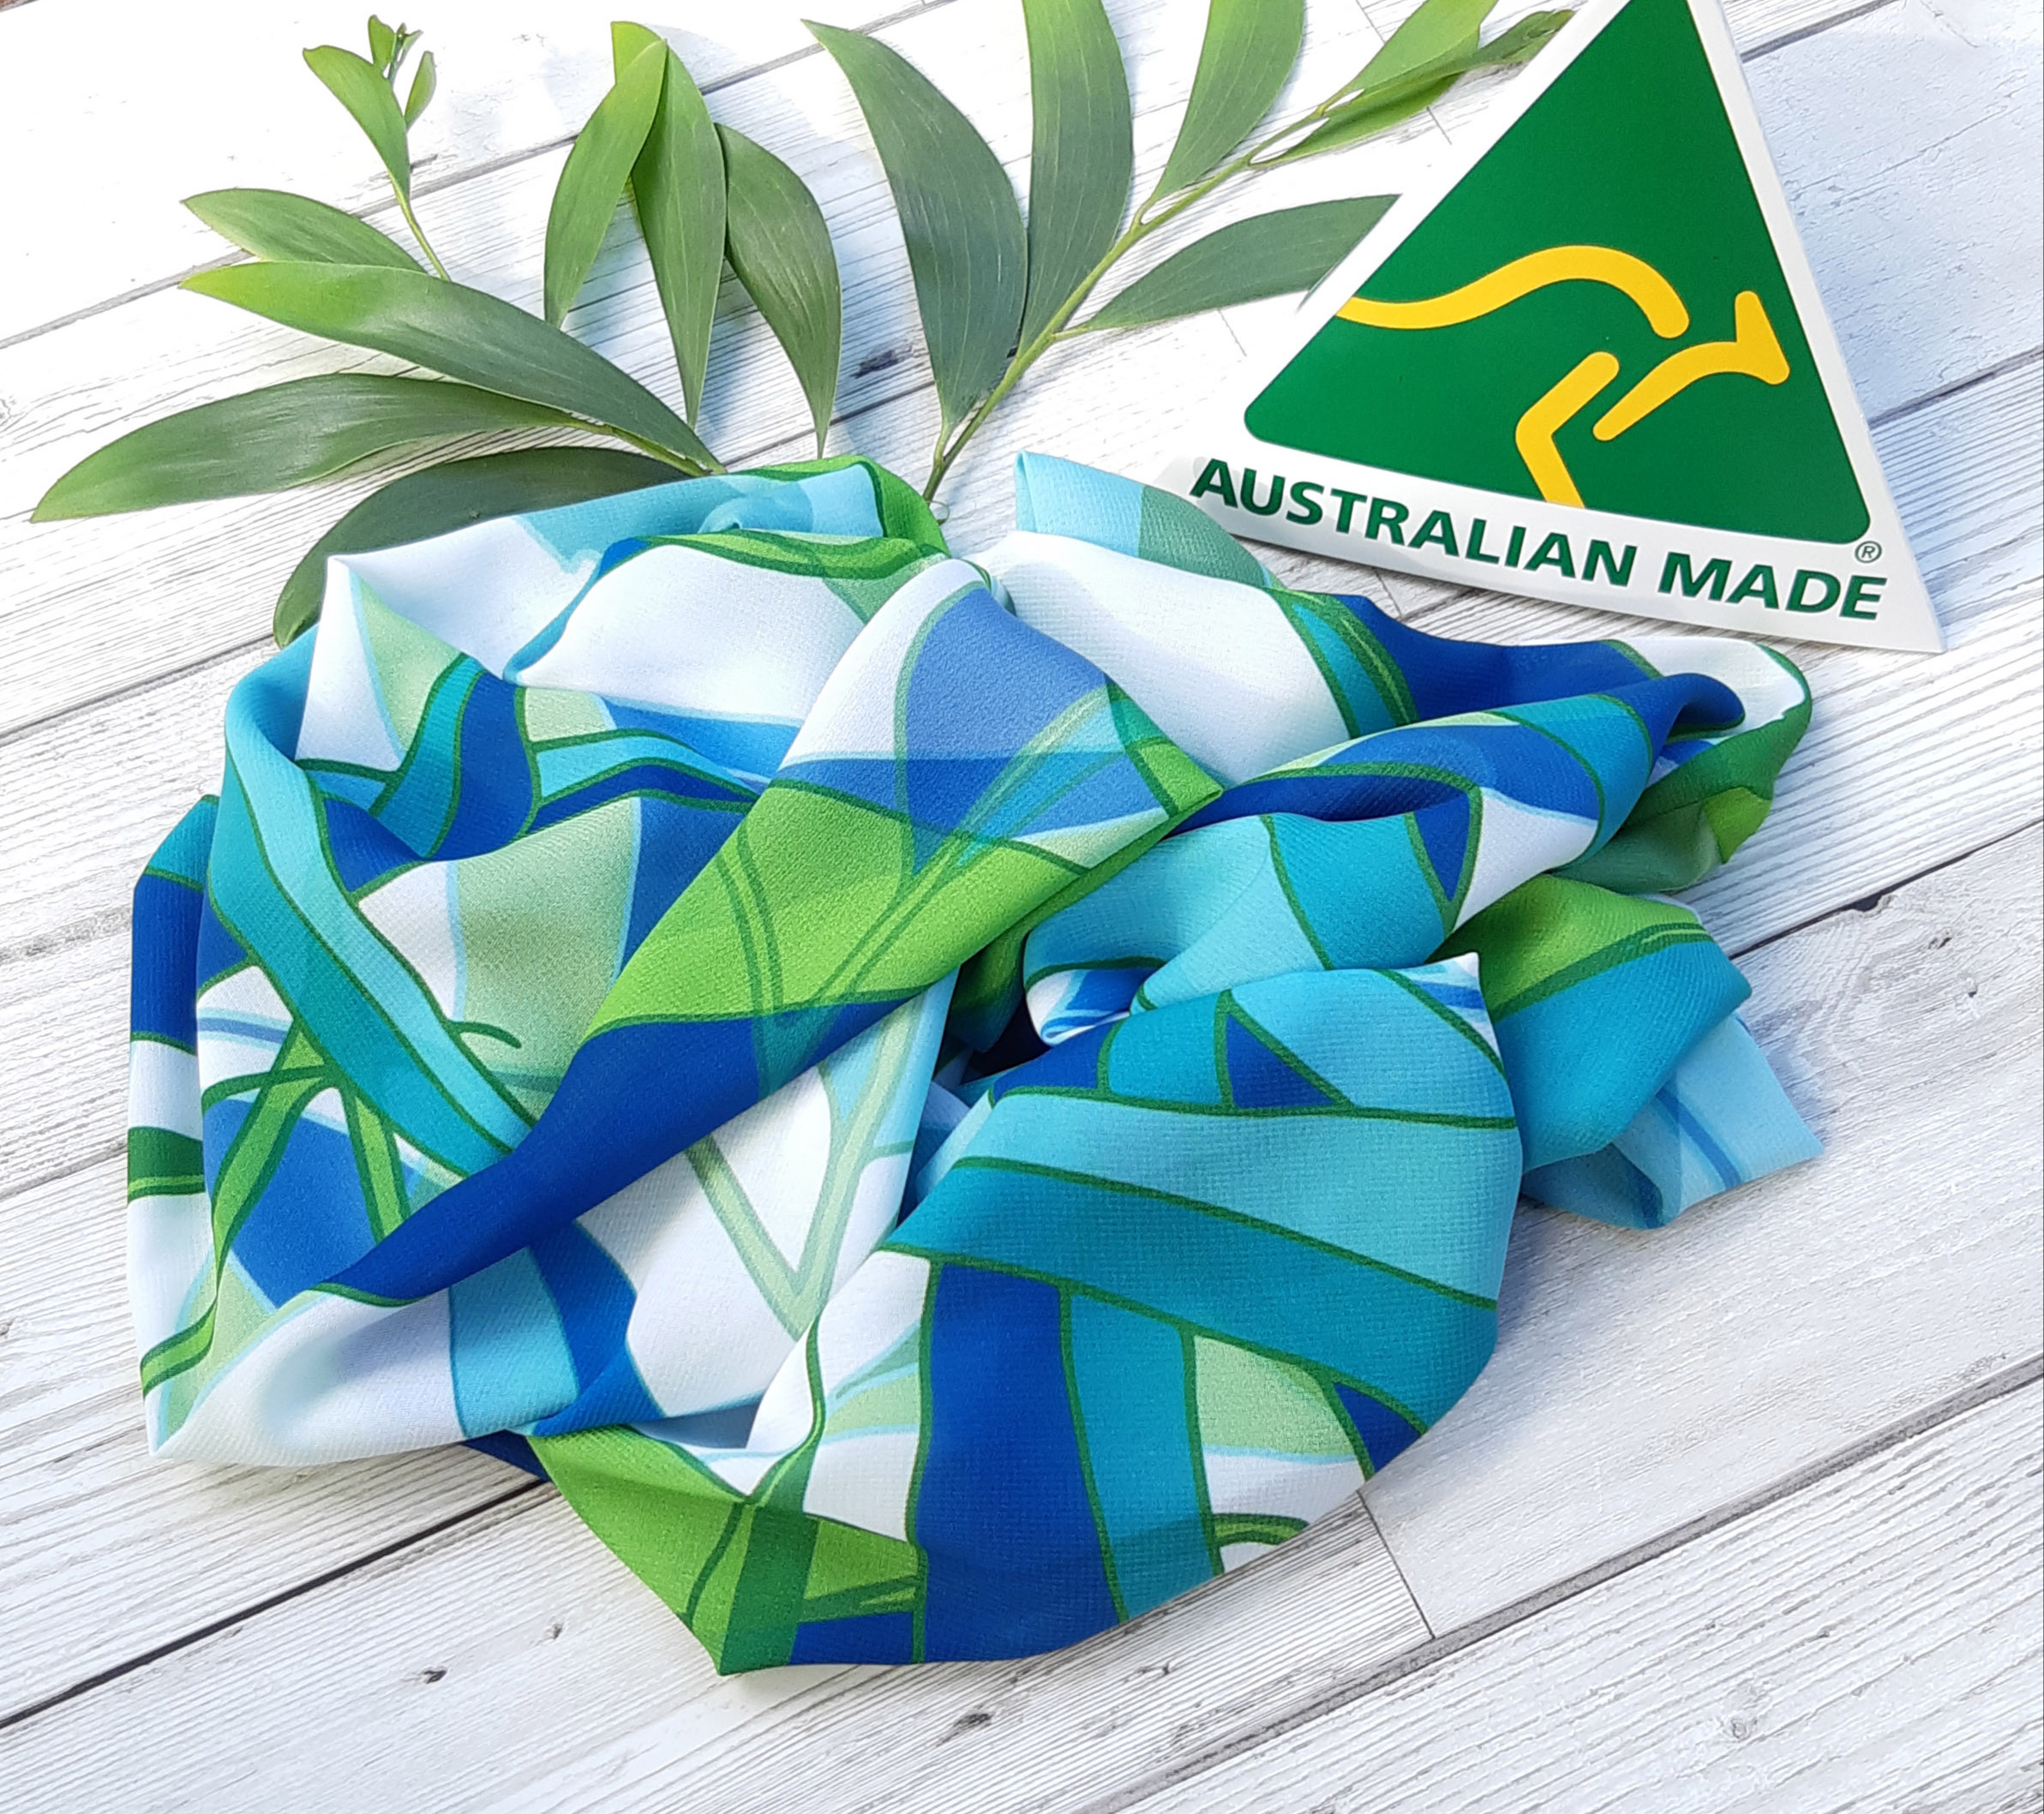 Lime Gum Leaf Australian Made